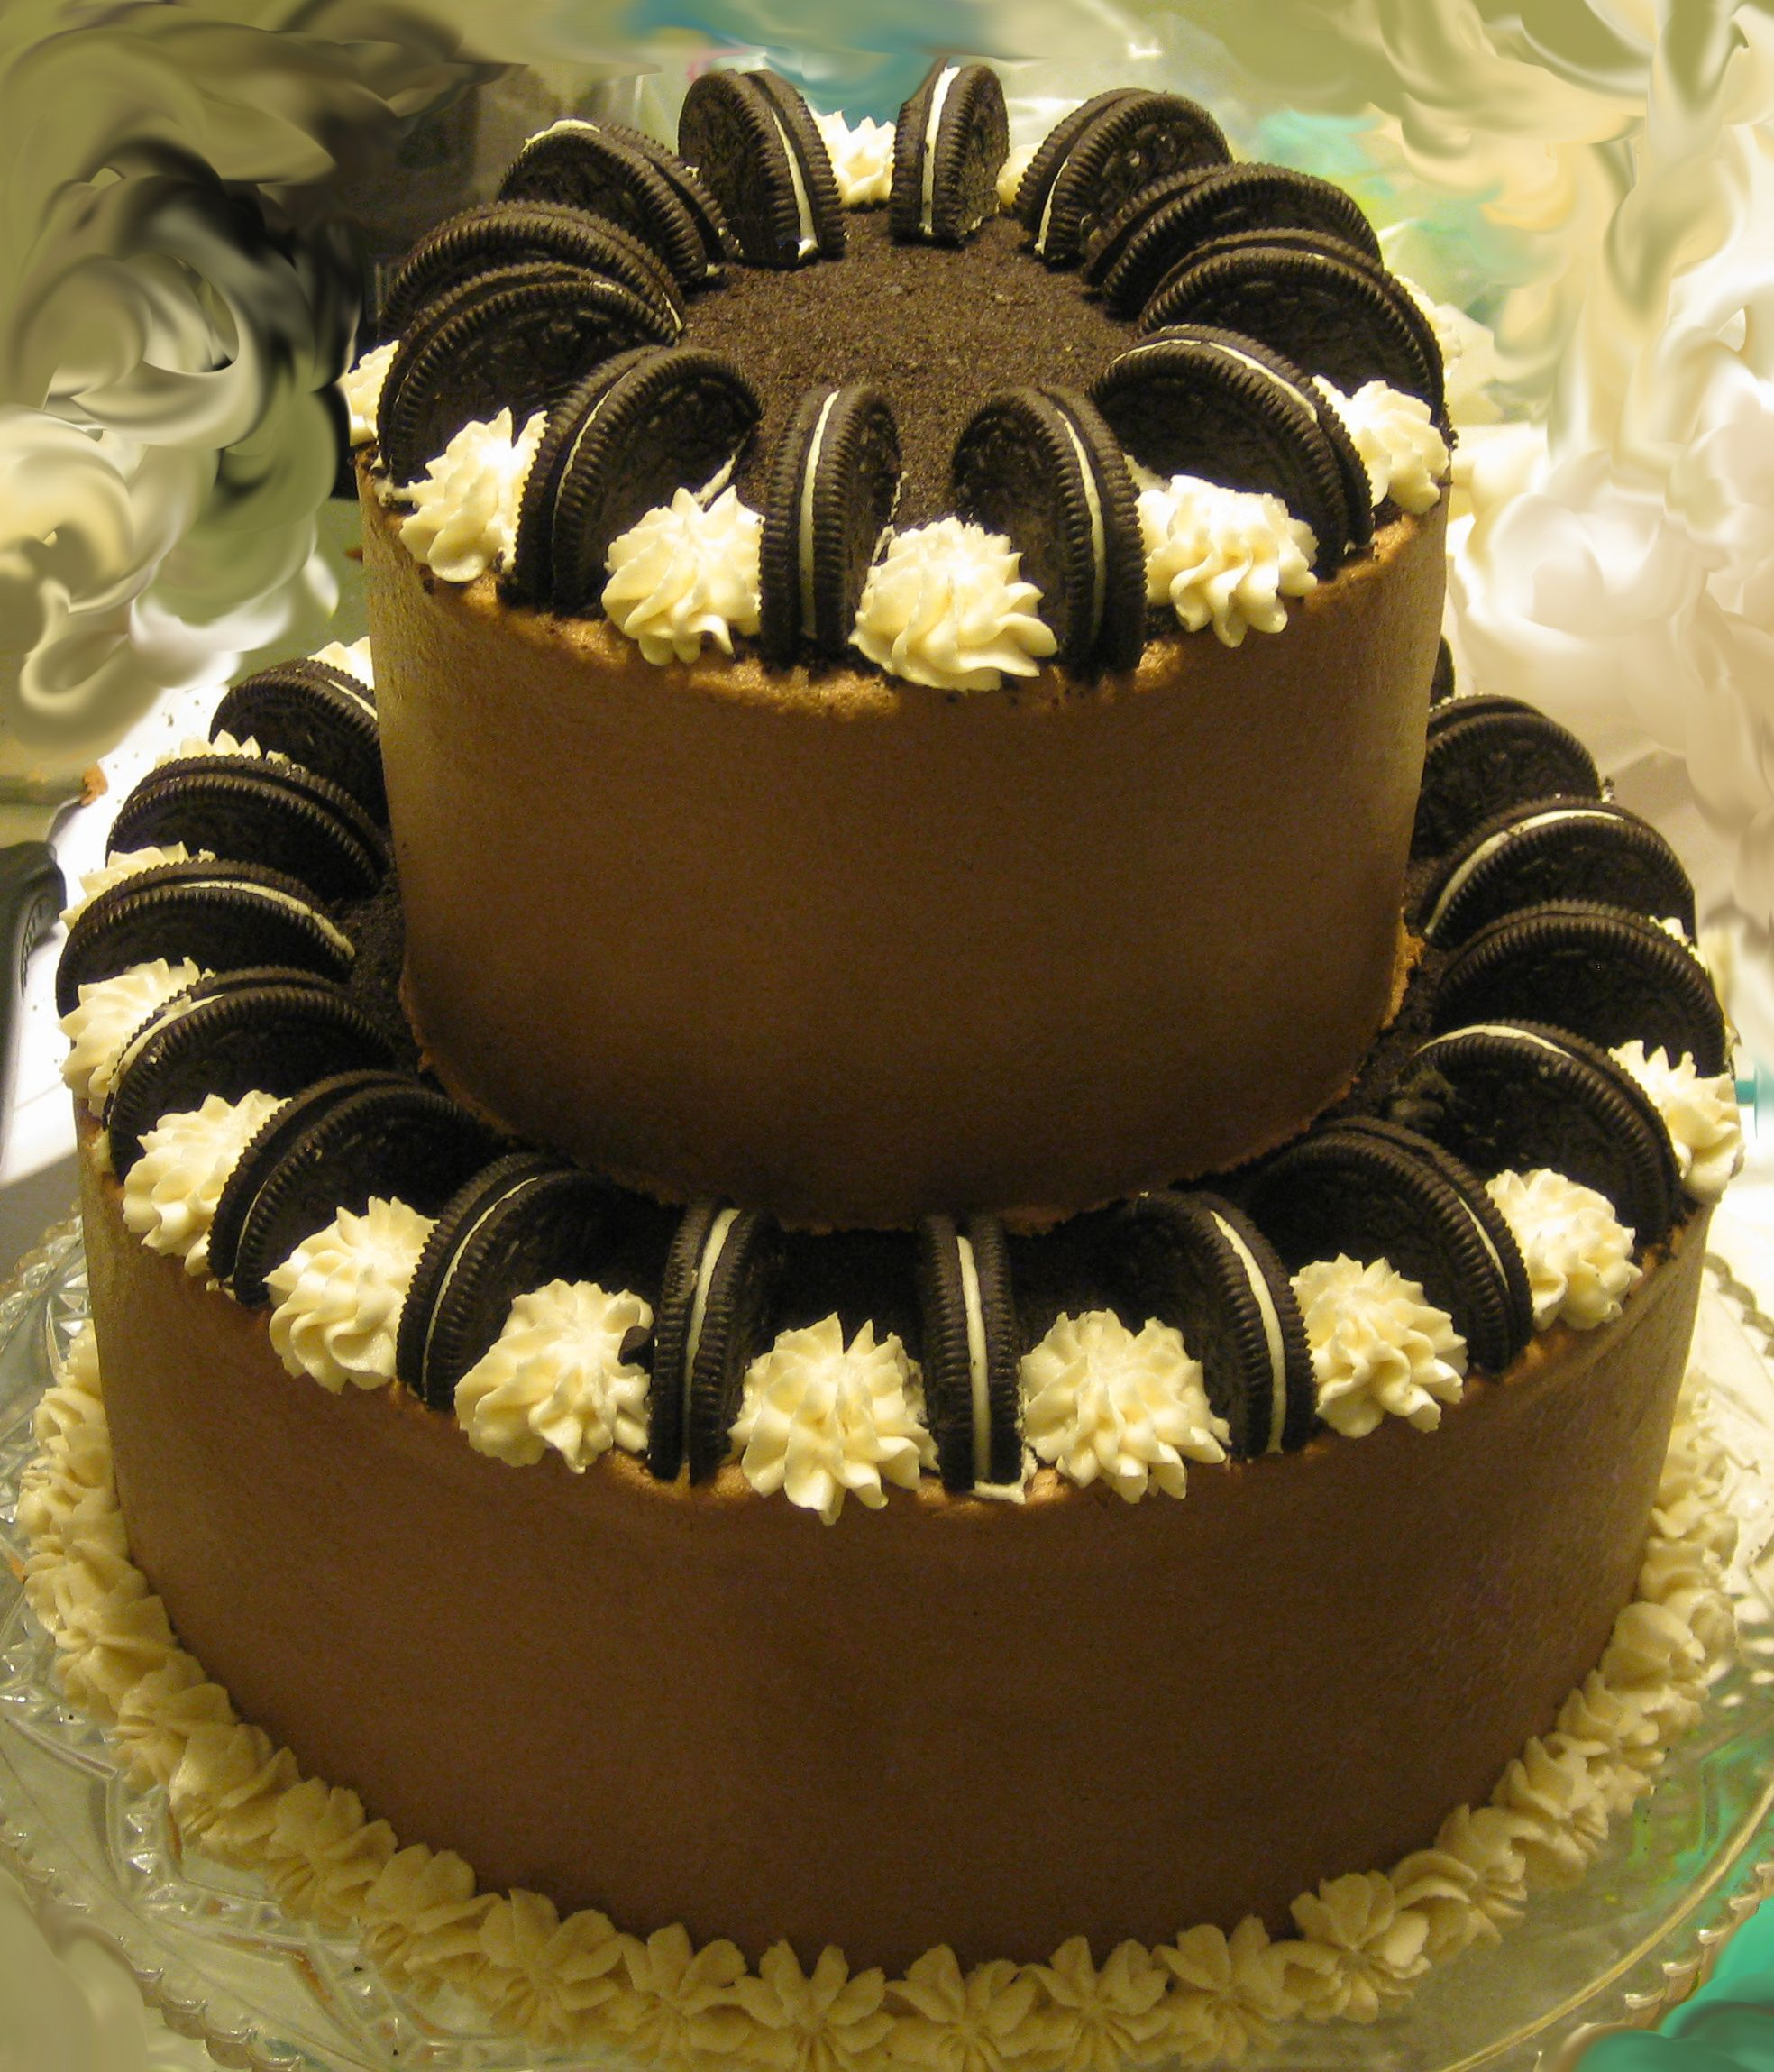 Chocolate WASC With Oreo Filling And Chocolate